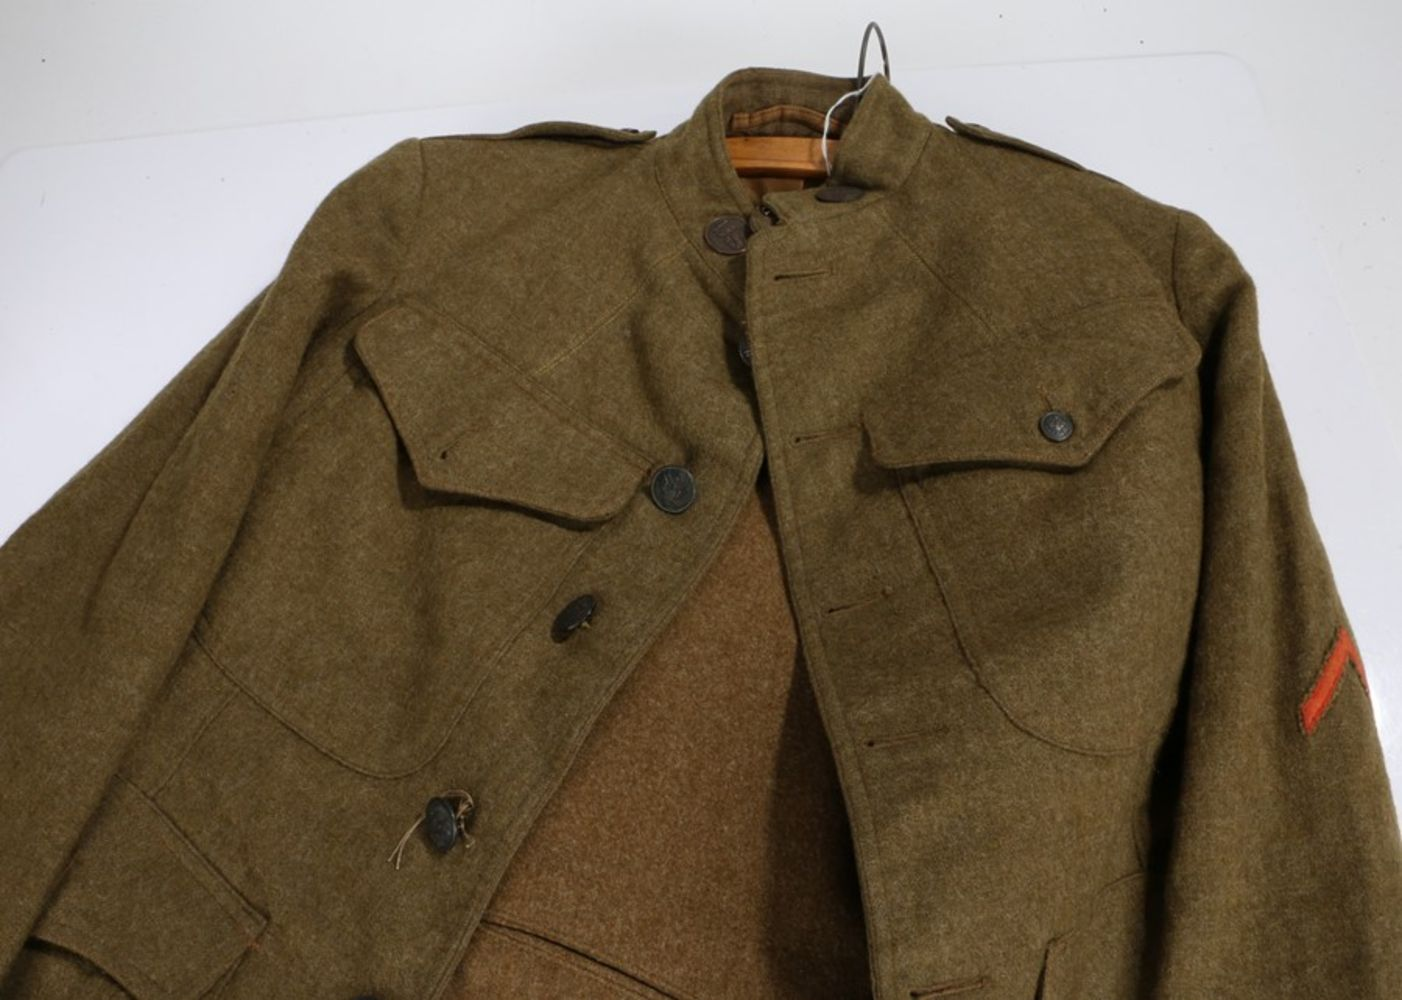 Timed Military Auction - Ending 9th May 2021